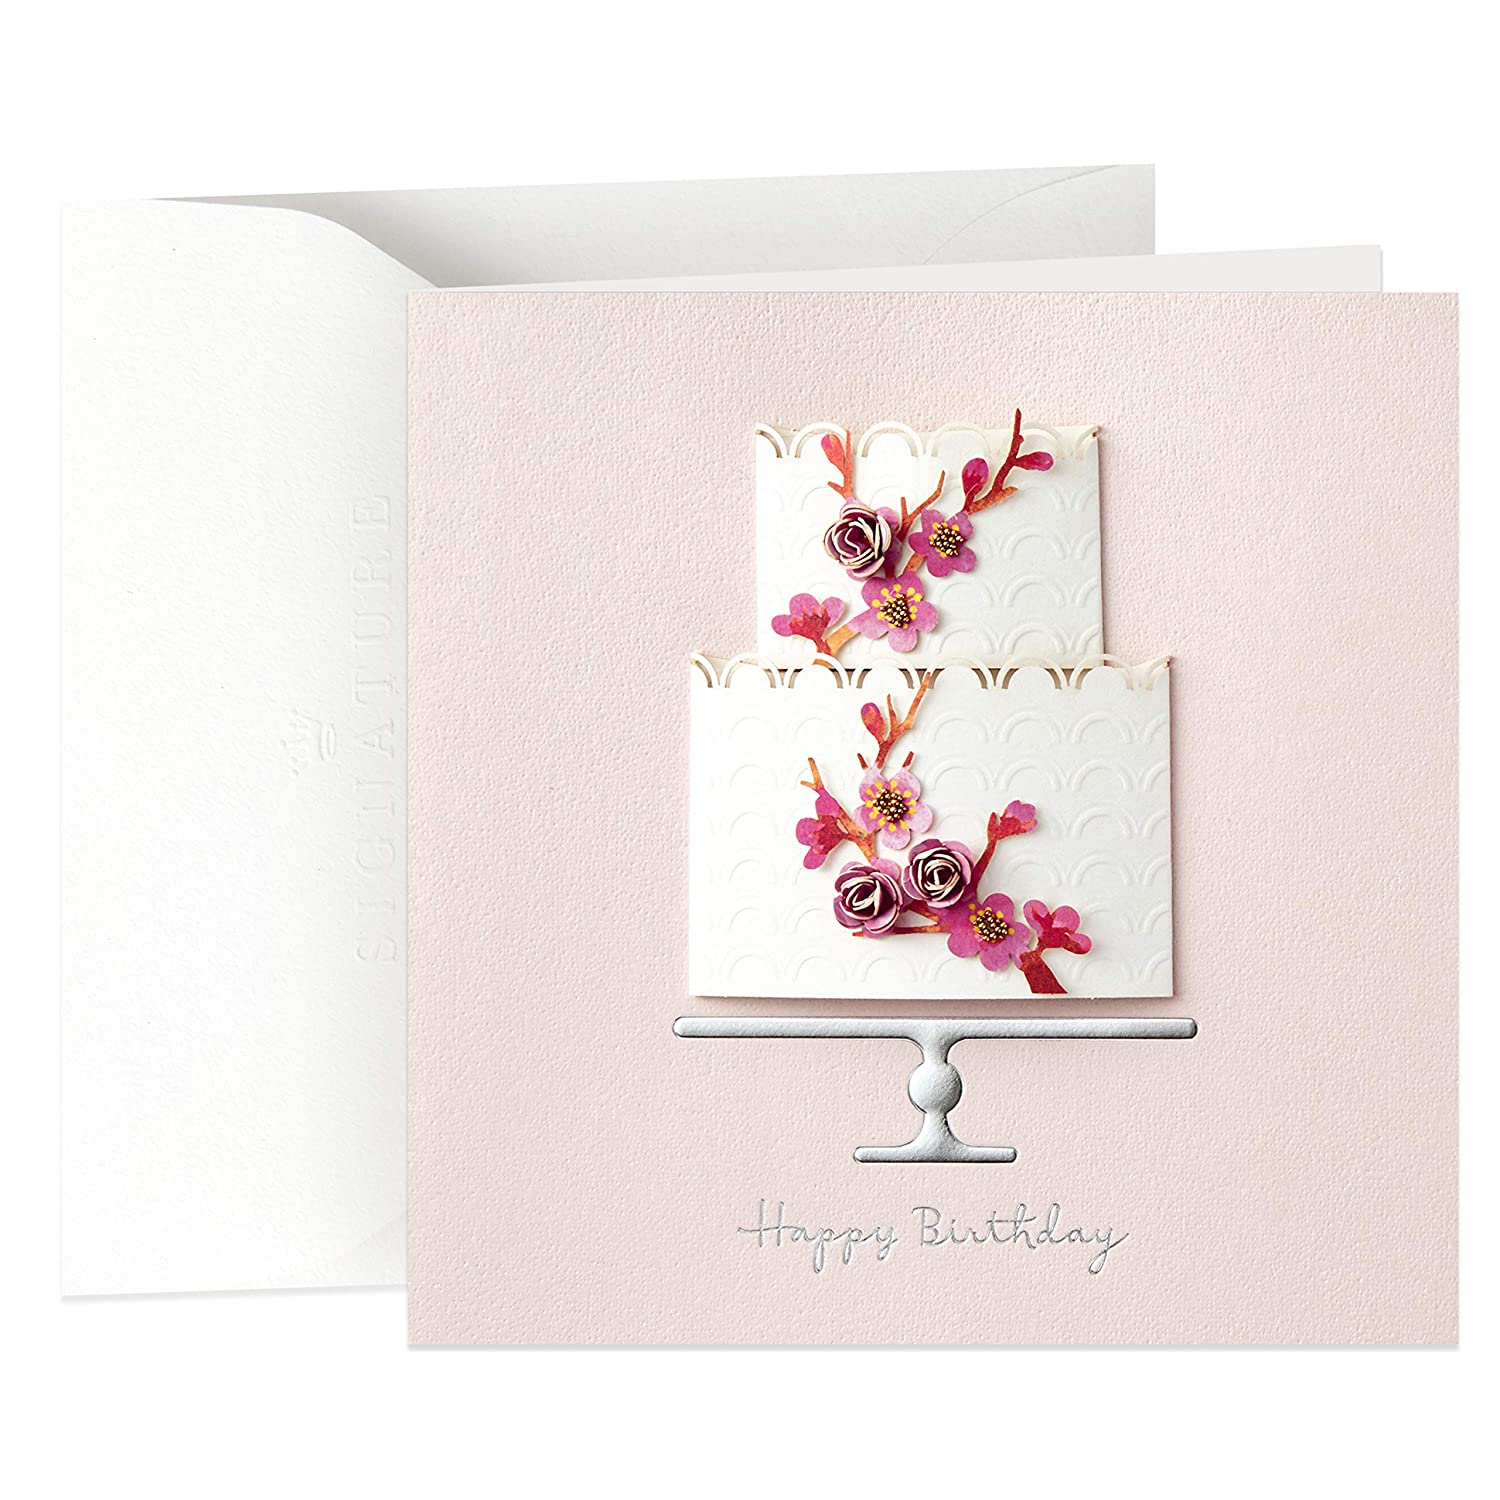 Amazon Hallmark Signature Birthday Card For Her Cake Office Products